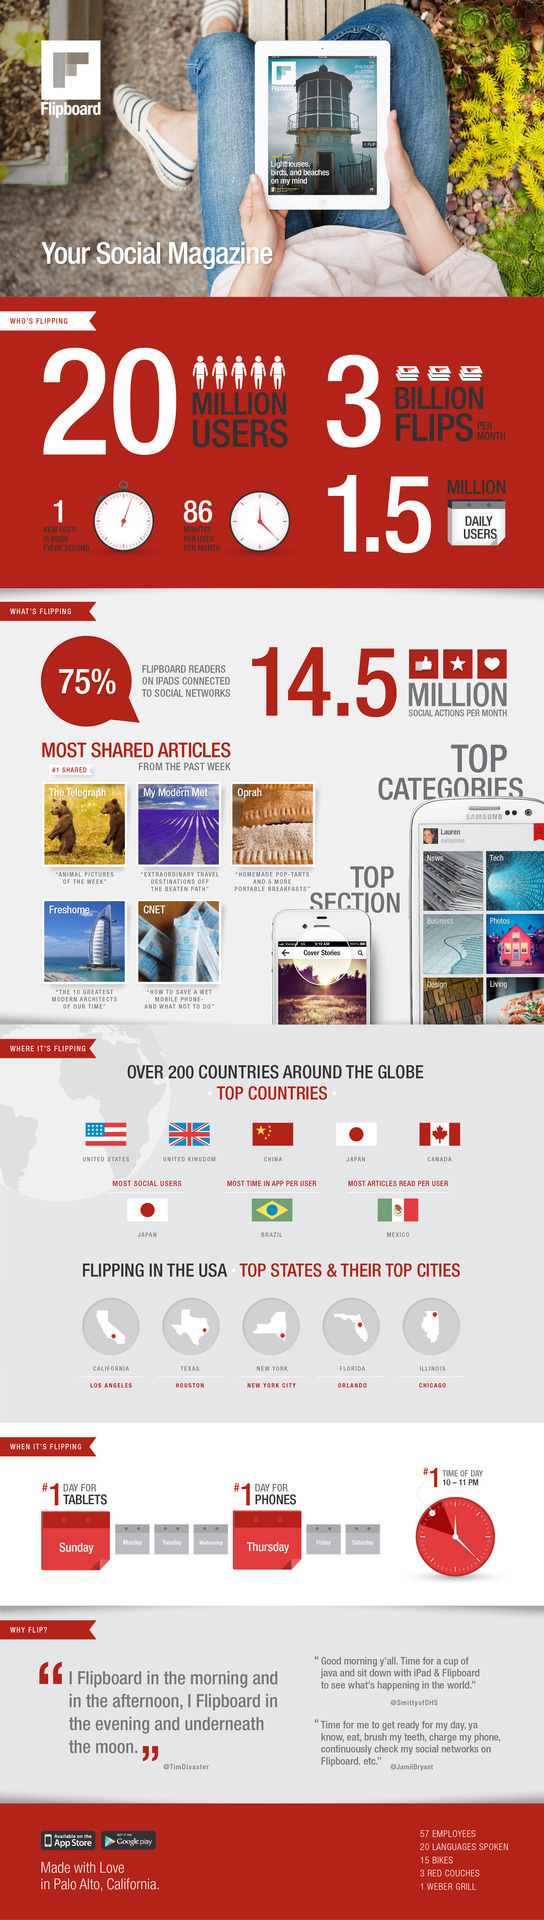 Flipboard: 20 Million Users [INFOGRAPHIC]